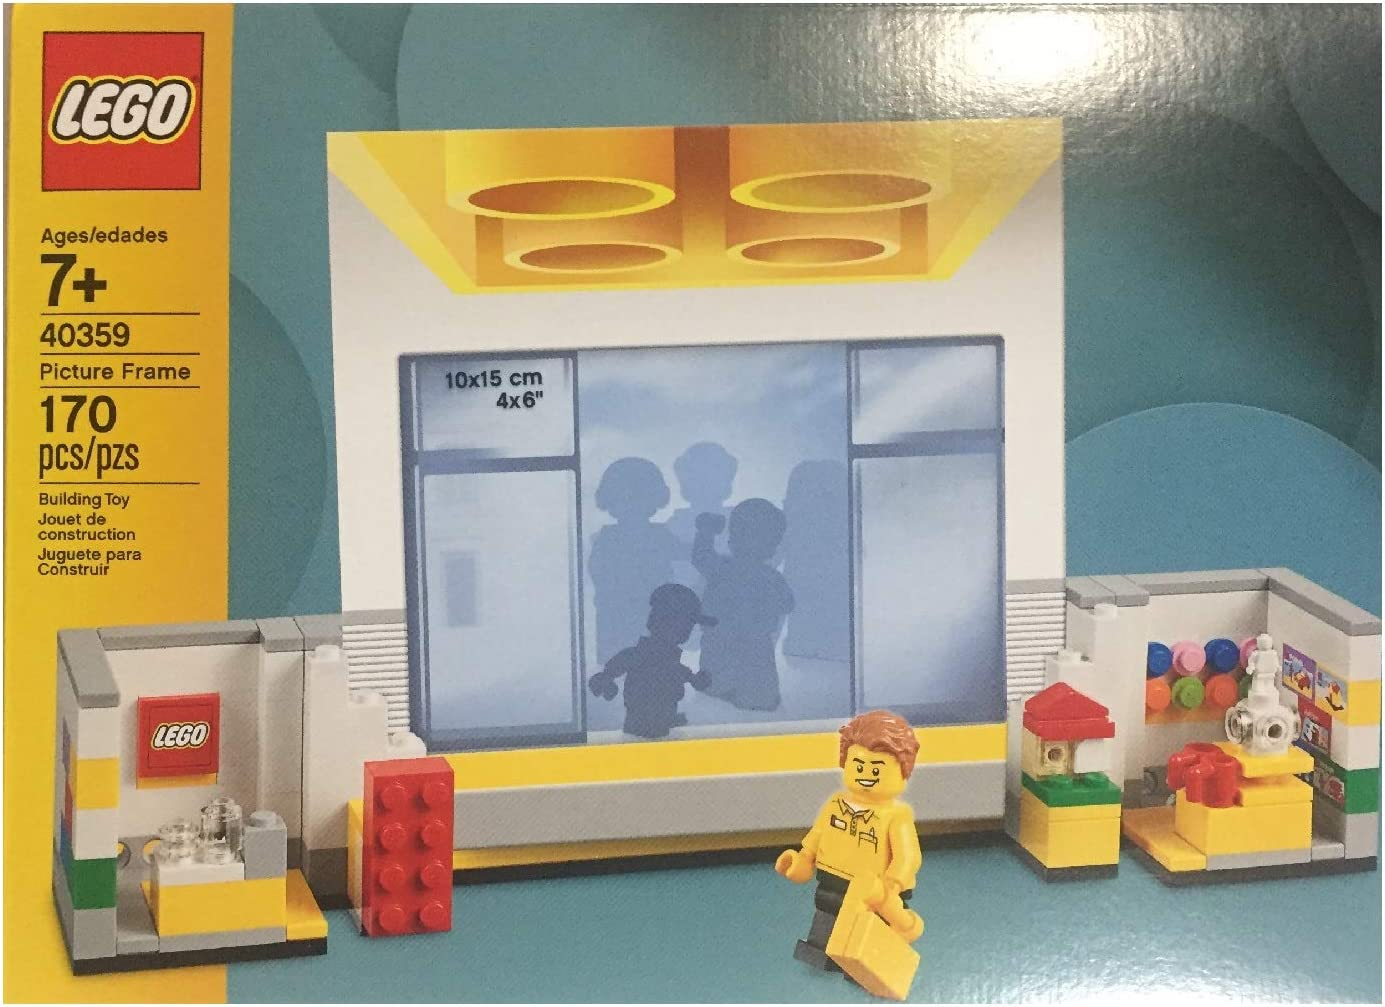 LEGO Store Picture Frame Set 40359 (170 Pieces)